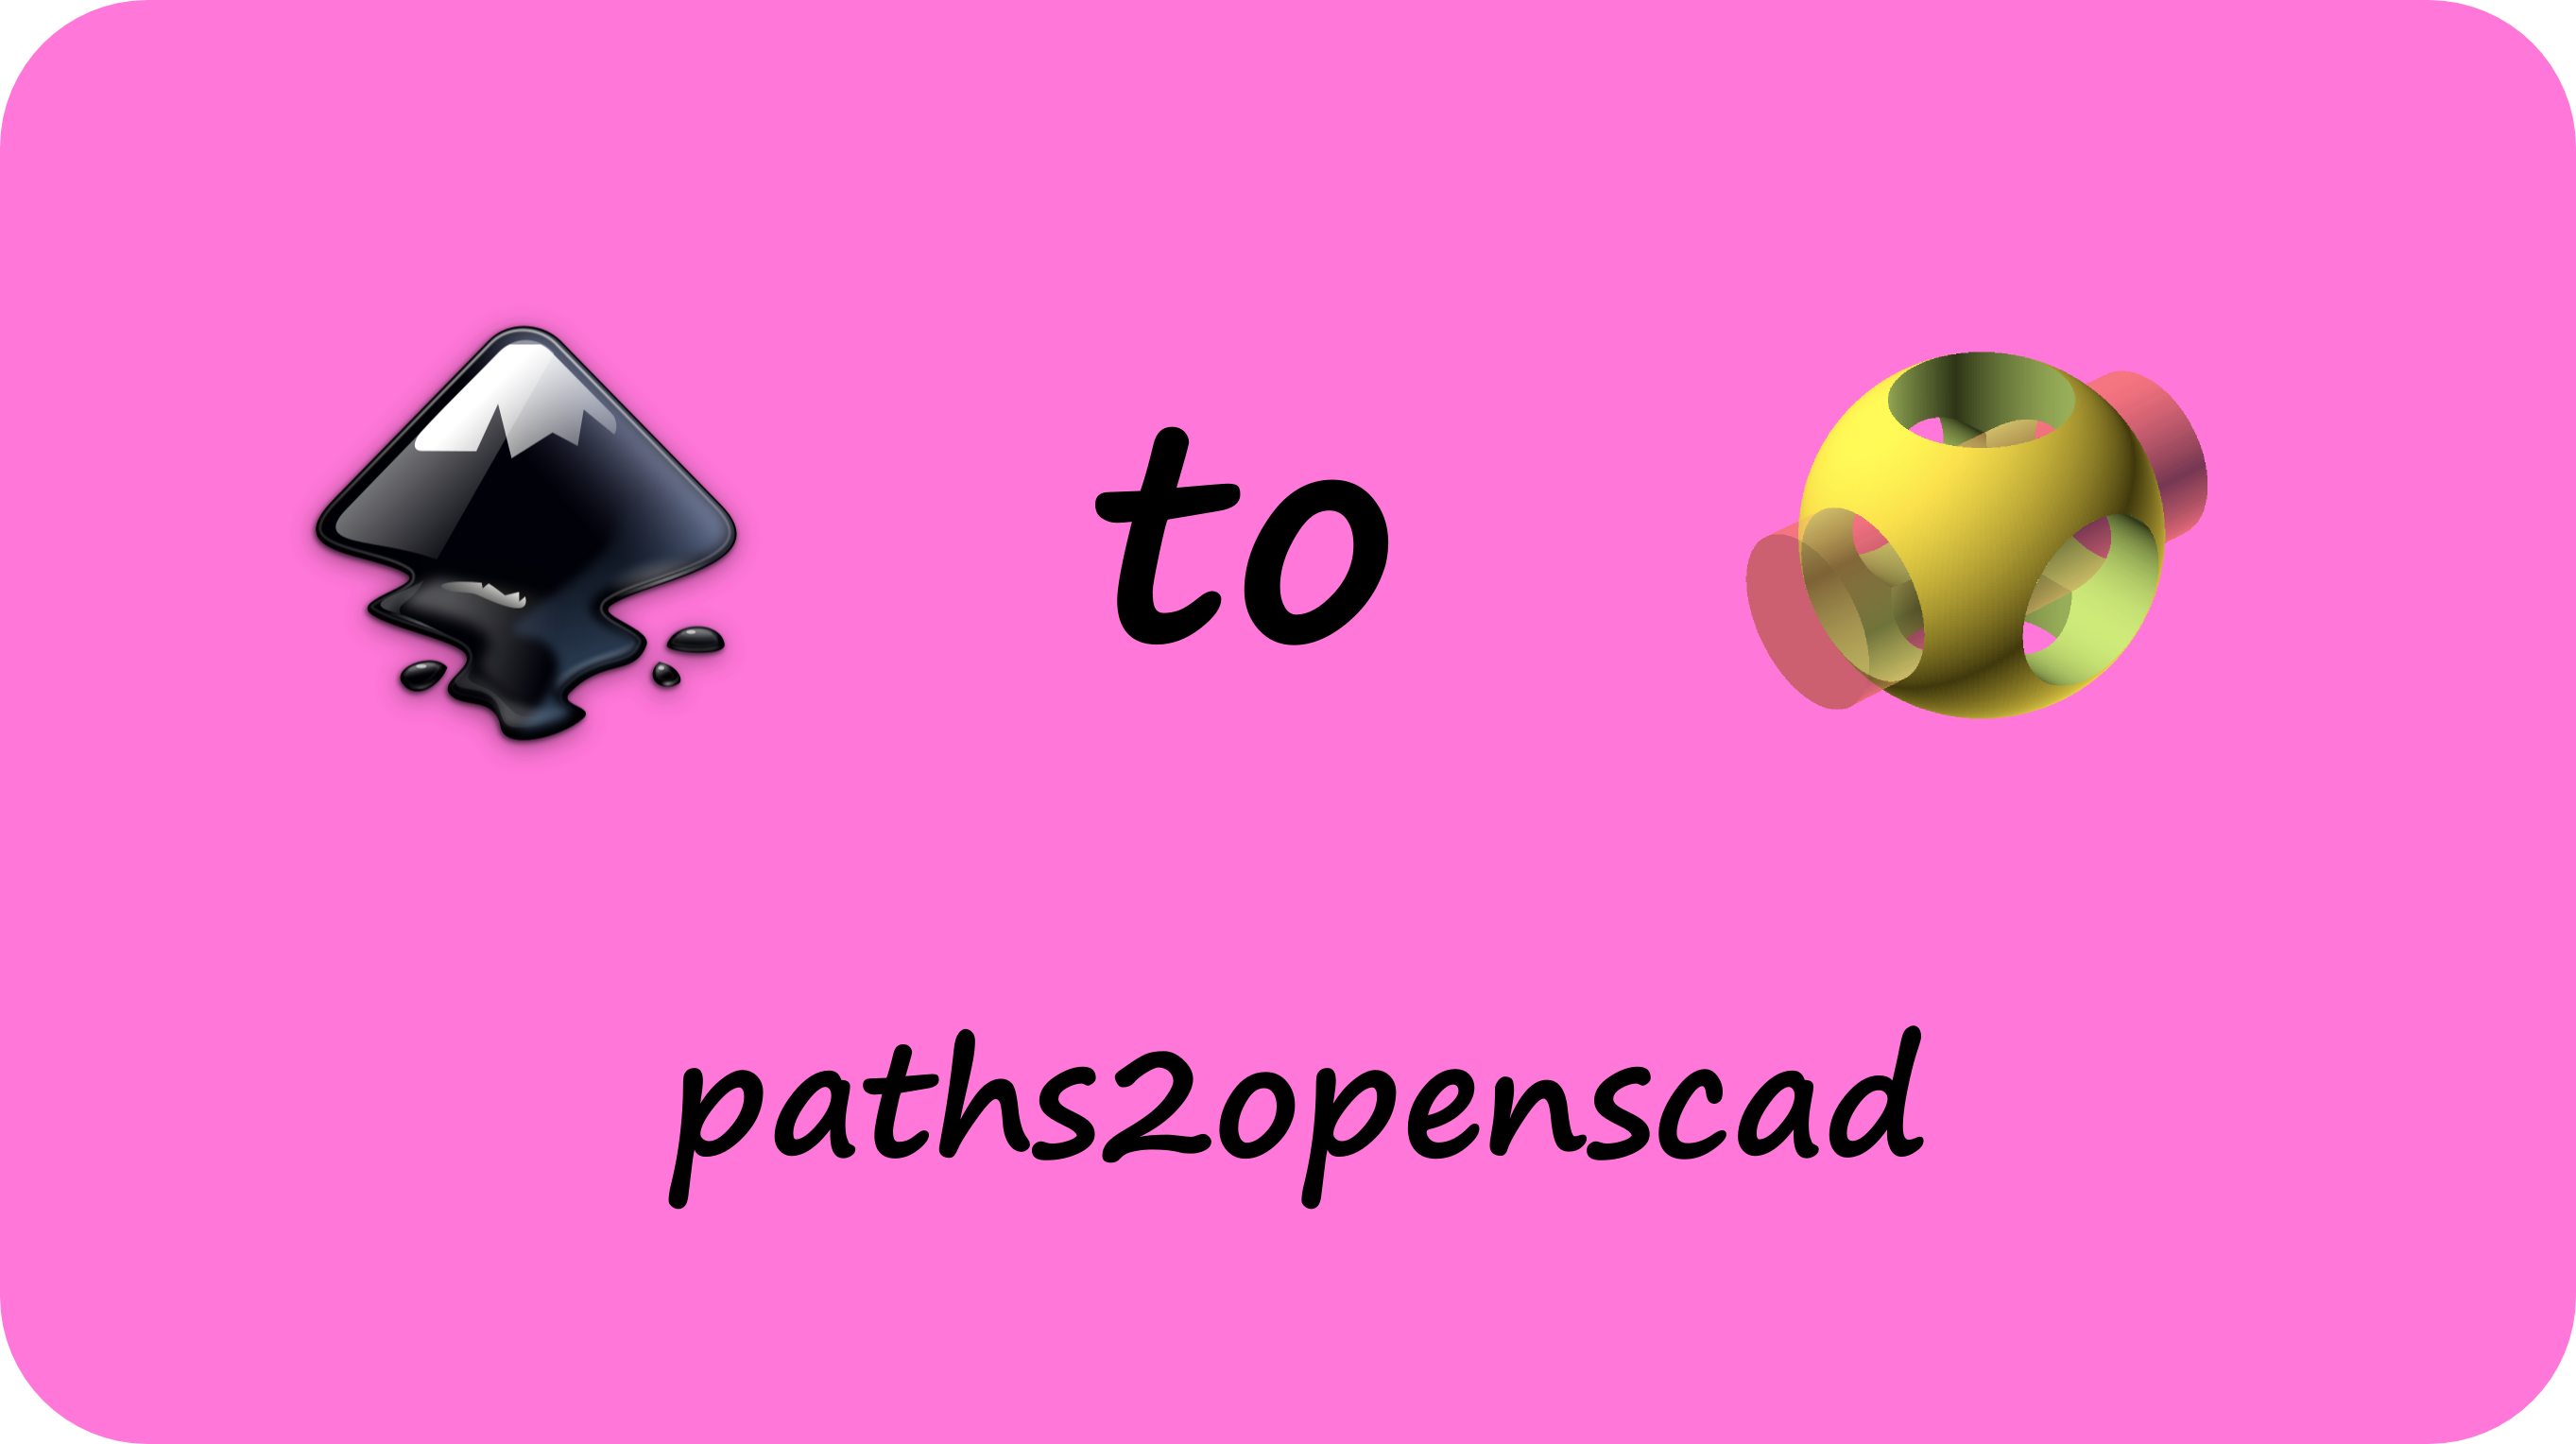 paths2openscad